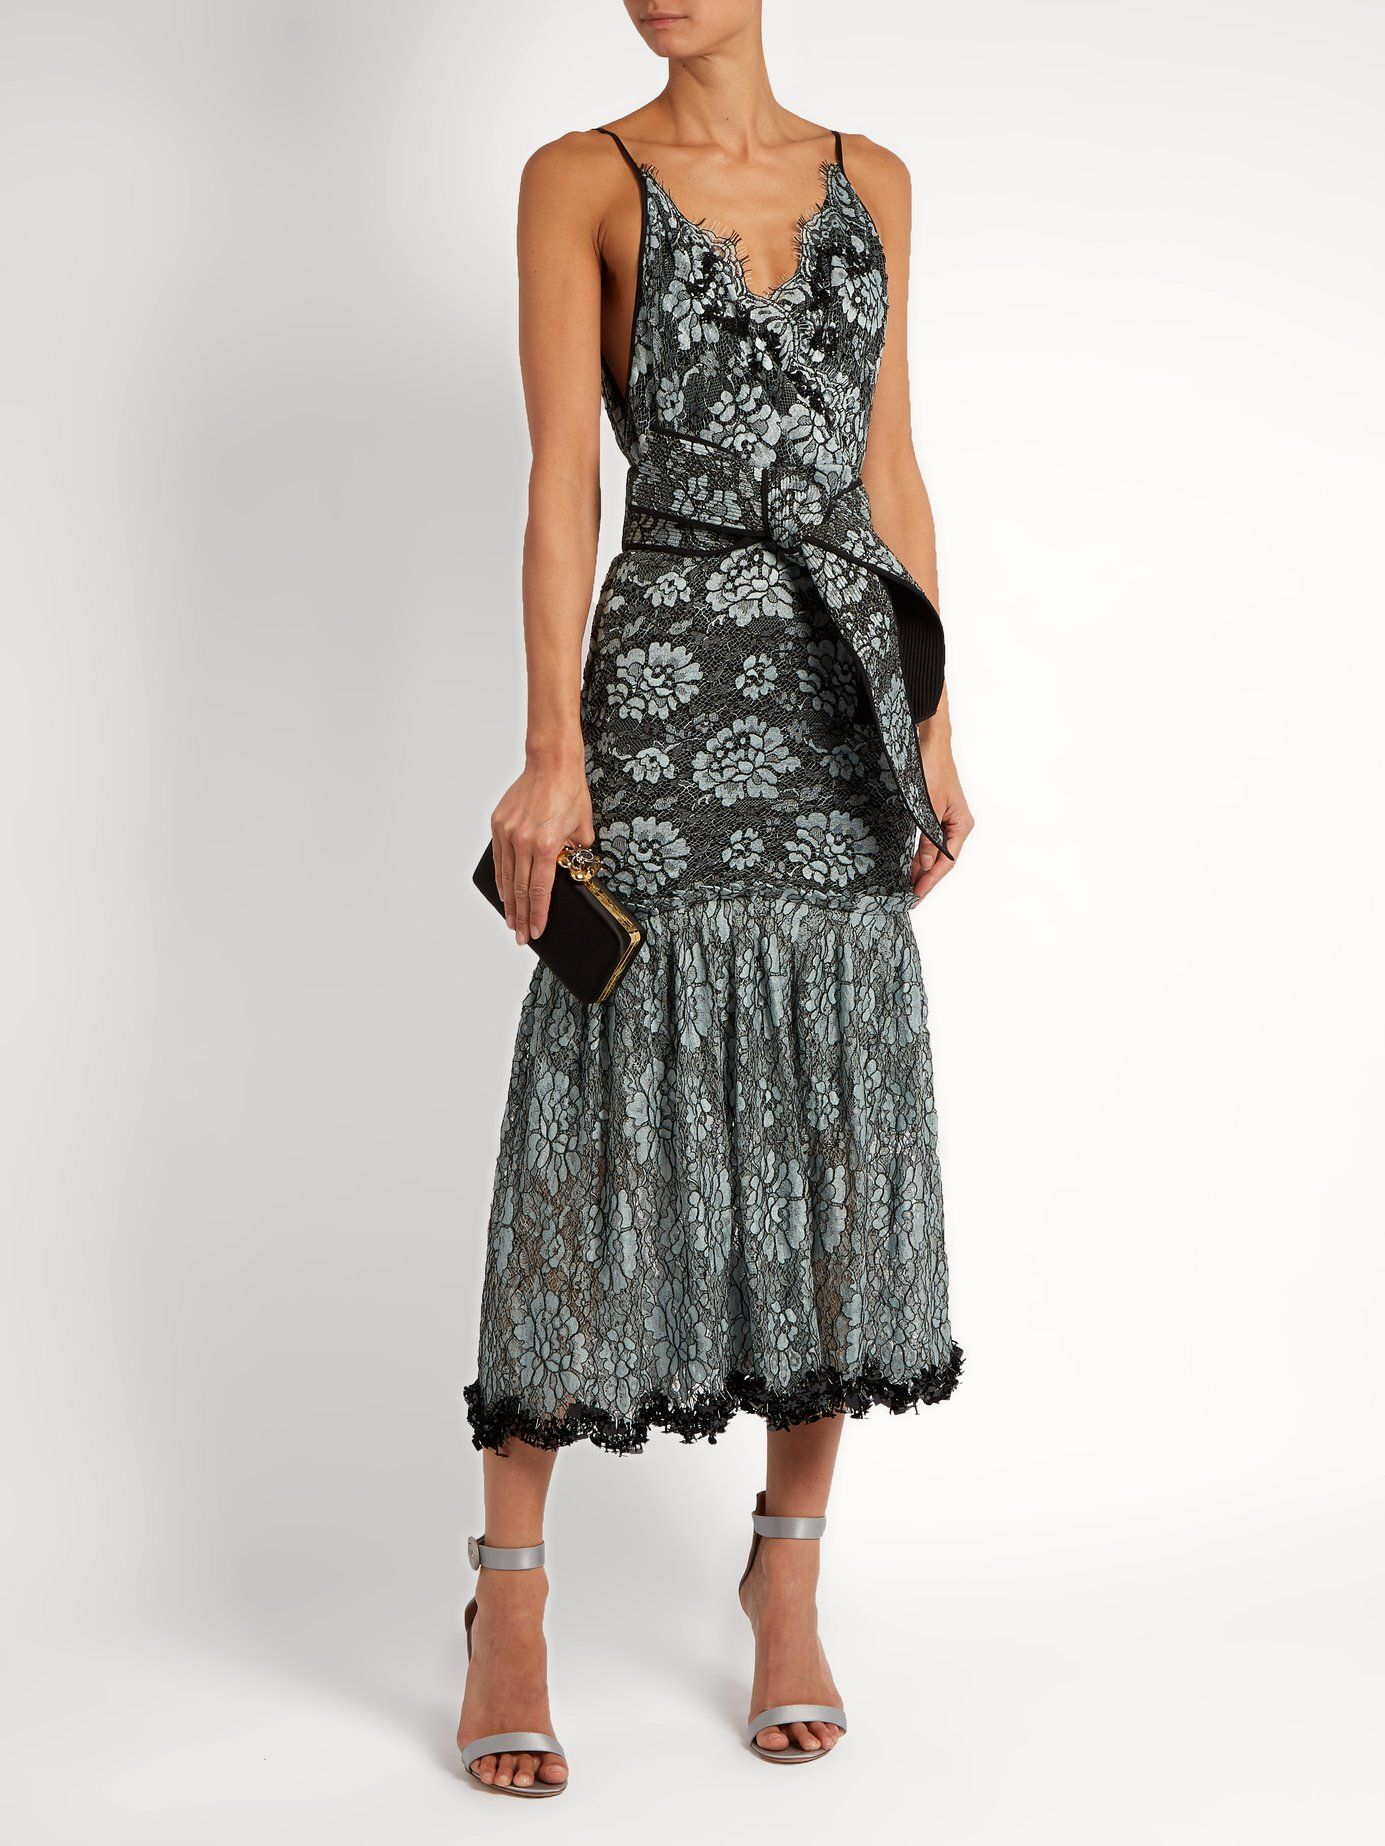 Bead-embellished lace cotton-blend faille dress Johanna Ortiz Free Shipping Amazon 2YRpdwlEs